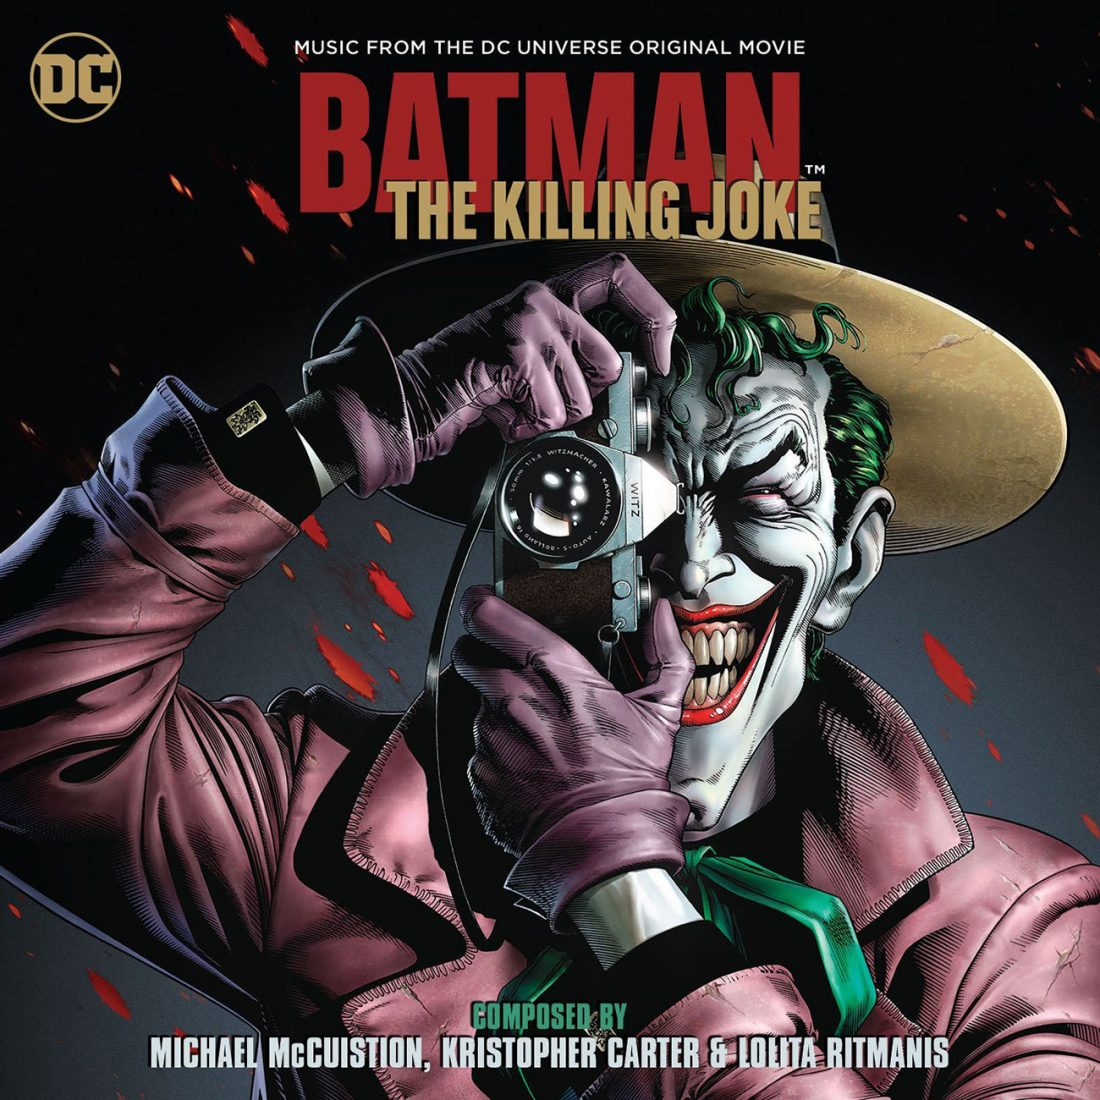 Batman: The Killing Joke – Music from the DC Universe Original Animated Movie Limited Edition